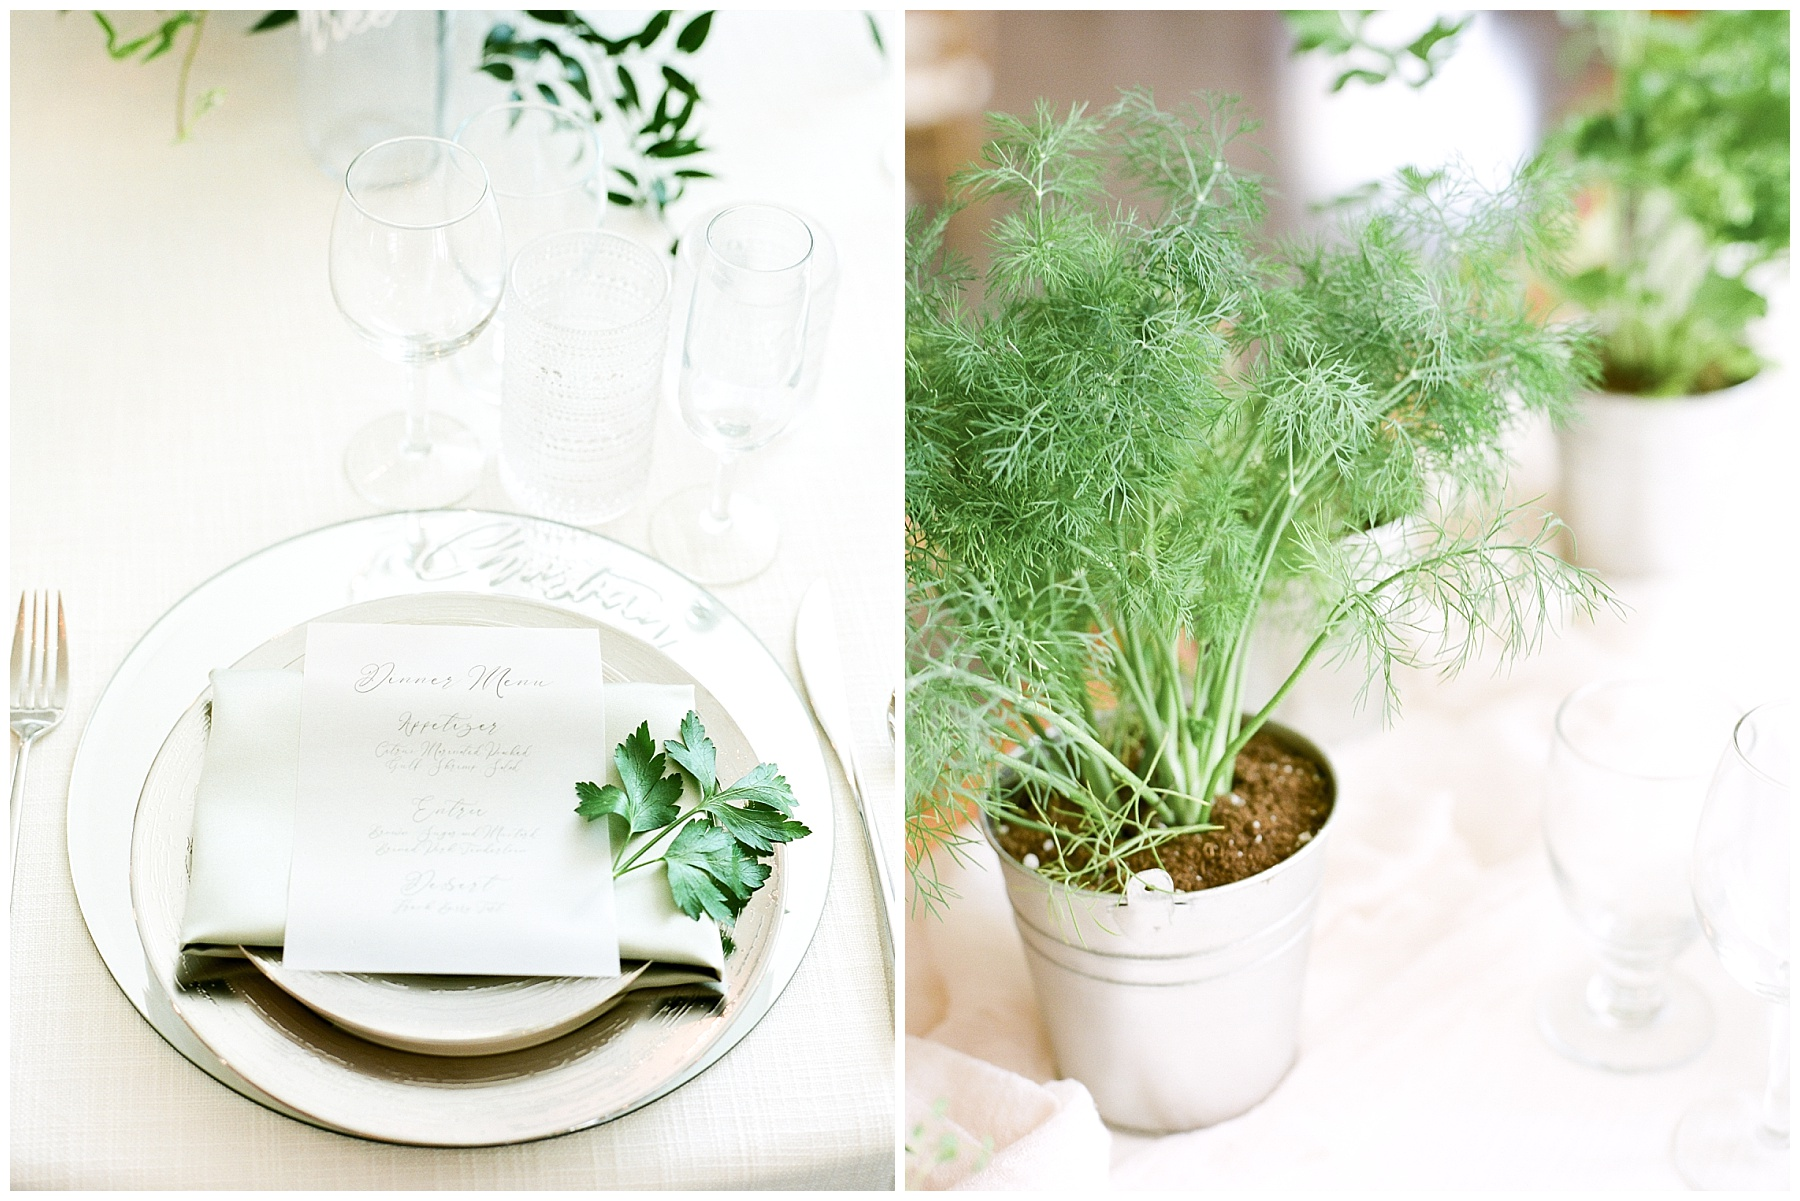 Textural Organic Wedding in All White Venue by Kelsi Kliethermes Wedding Photographer - Missouri, Midwest, and Destinations_0091.jpg